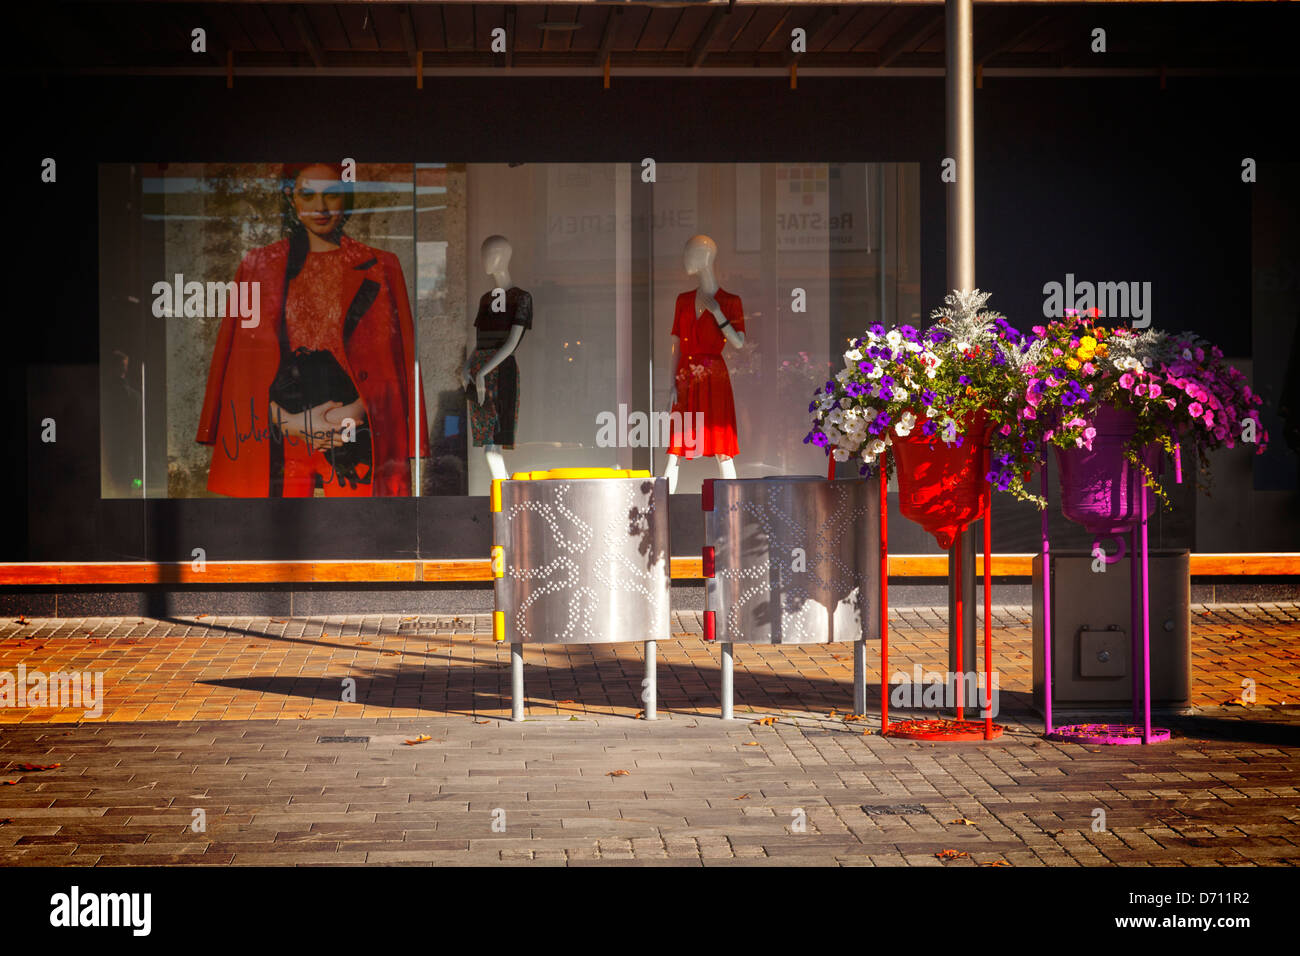 Shop Window Display and Floral Display - a shop window - Stock Image